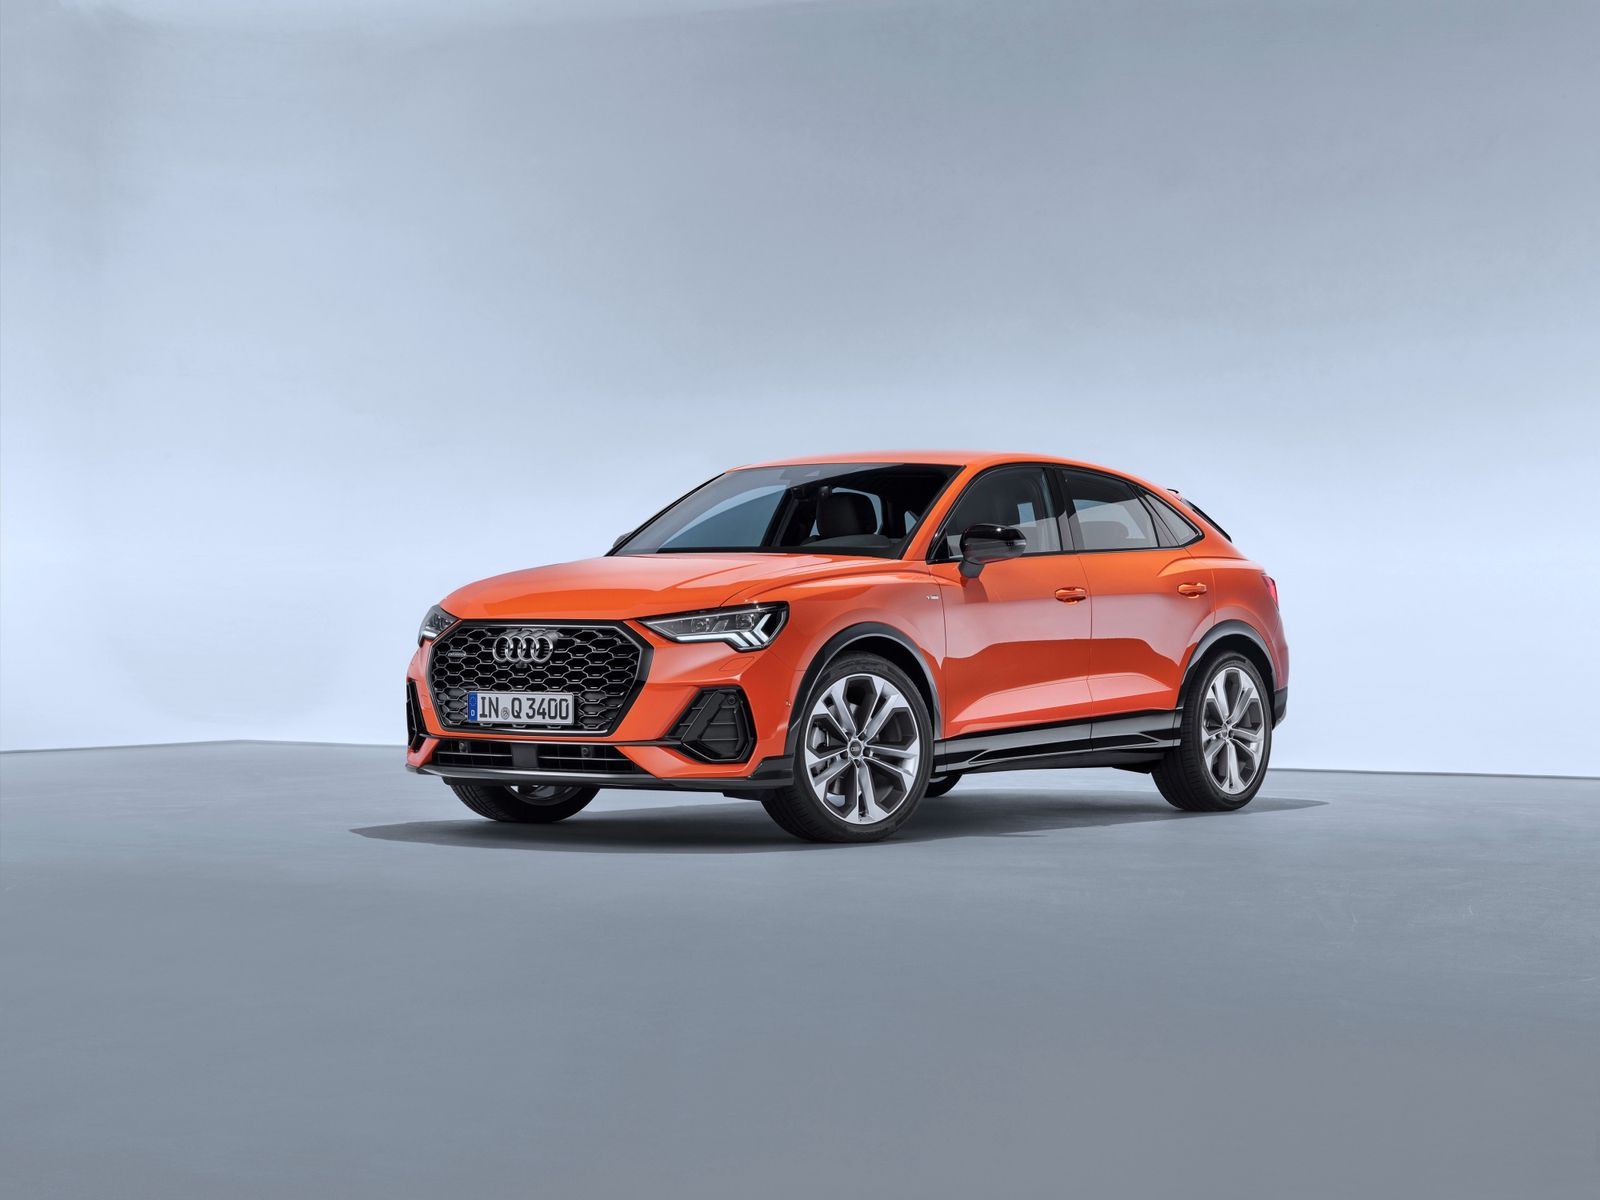 Audi Q3 Sportback is the newest SUV Coupe on the market